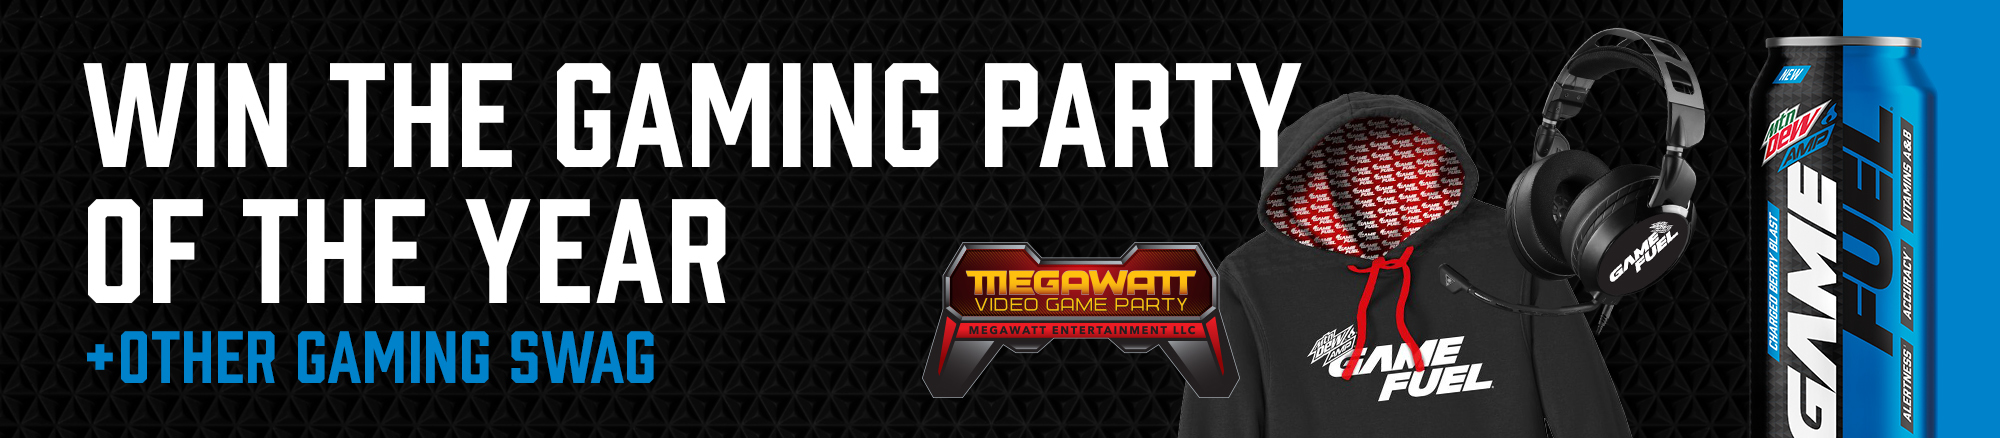 You could win the video gaming party of the year! Enter Now!